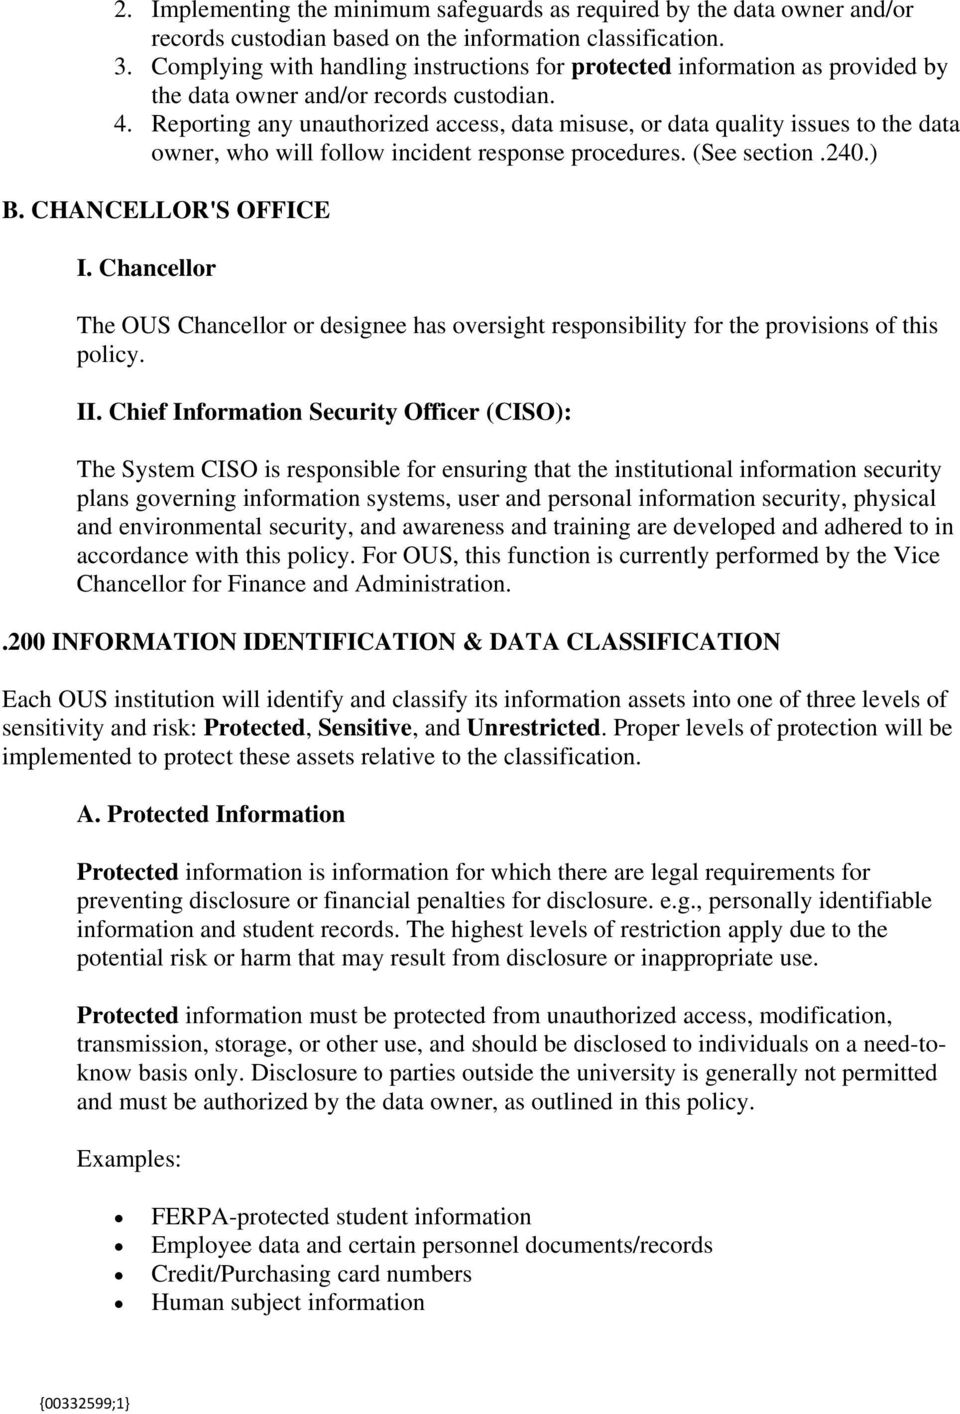 Reporting any unauthorized access, data misuse, or data quality issues to the data owner, who will follow incident response procedures. (See section.240.) B. CHANCELLOR'S OFFICE I.